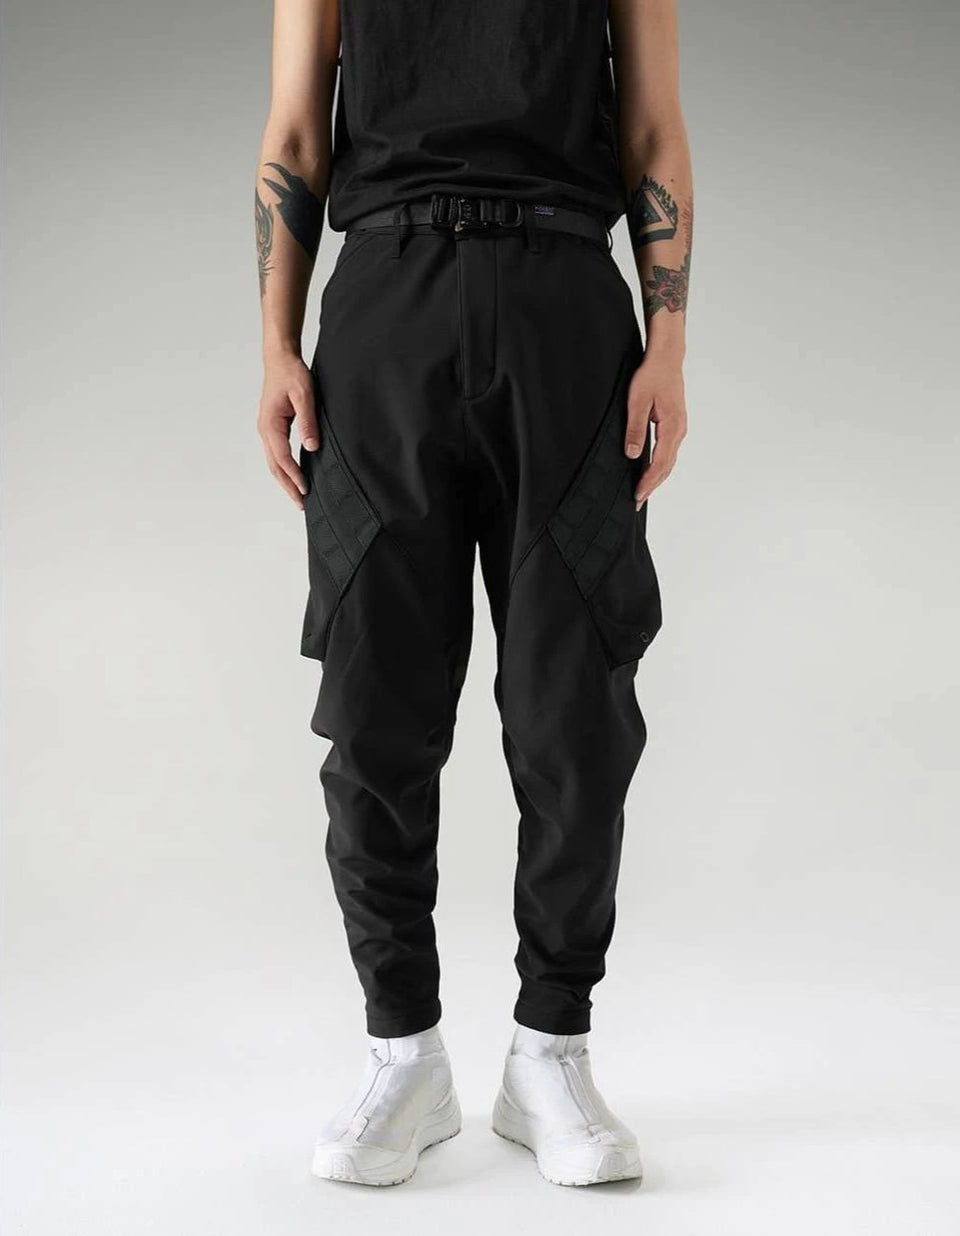 Softshell City Pants - Aesthetic Homage  | Techwear | Noragi | Lhamo | Men's Kimono